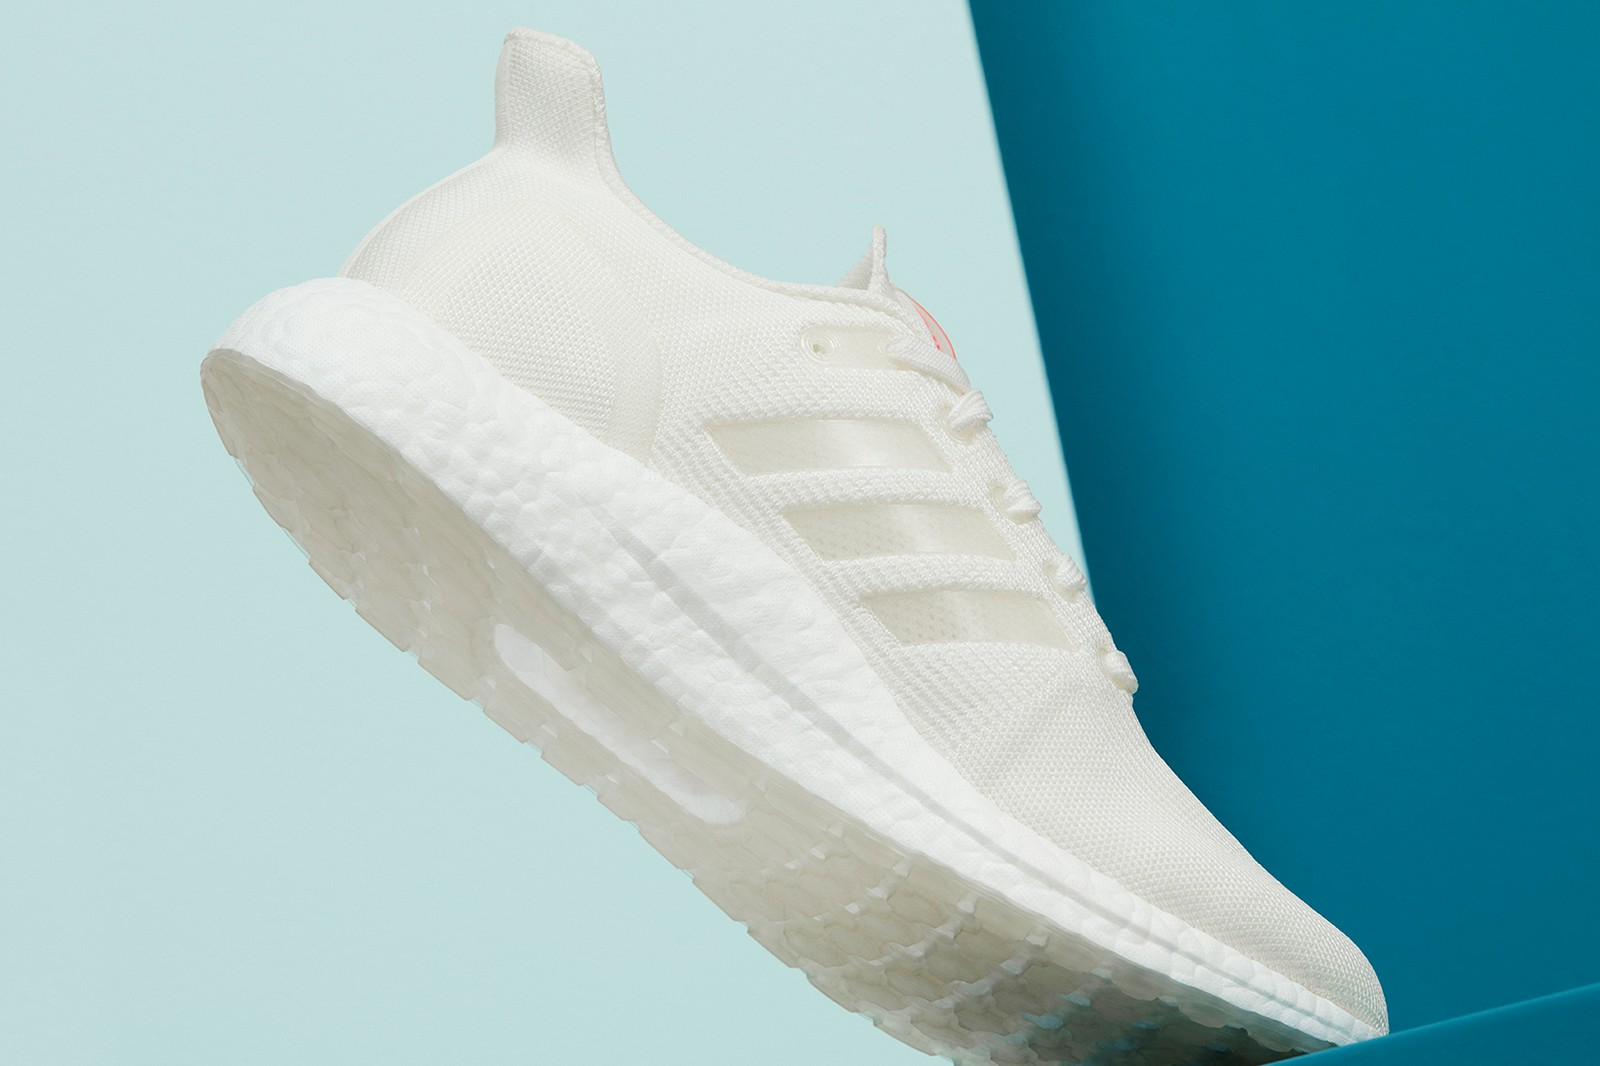 adidas ultraboost dna loop made to be remade sneakers sustainable recyclable white colorway orange footwear sneakerhead